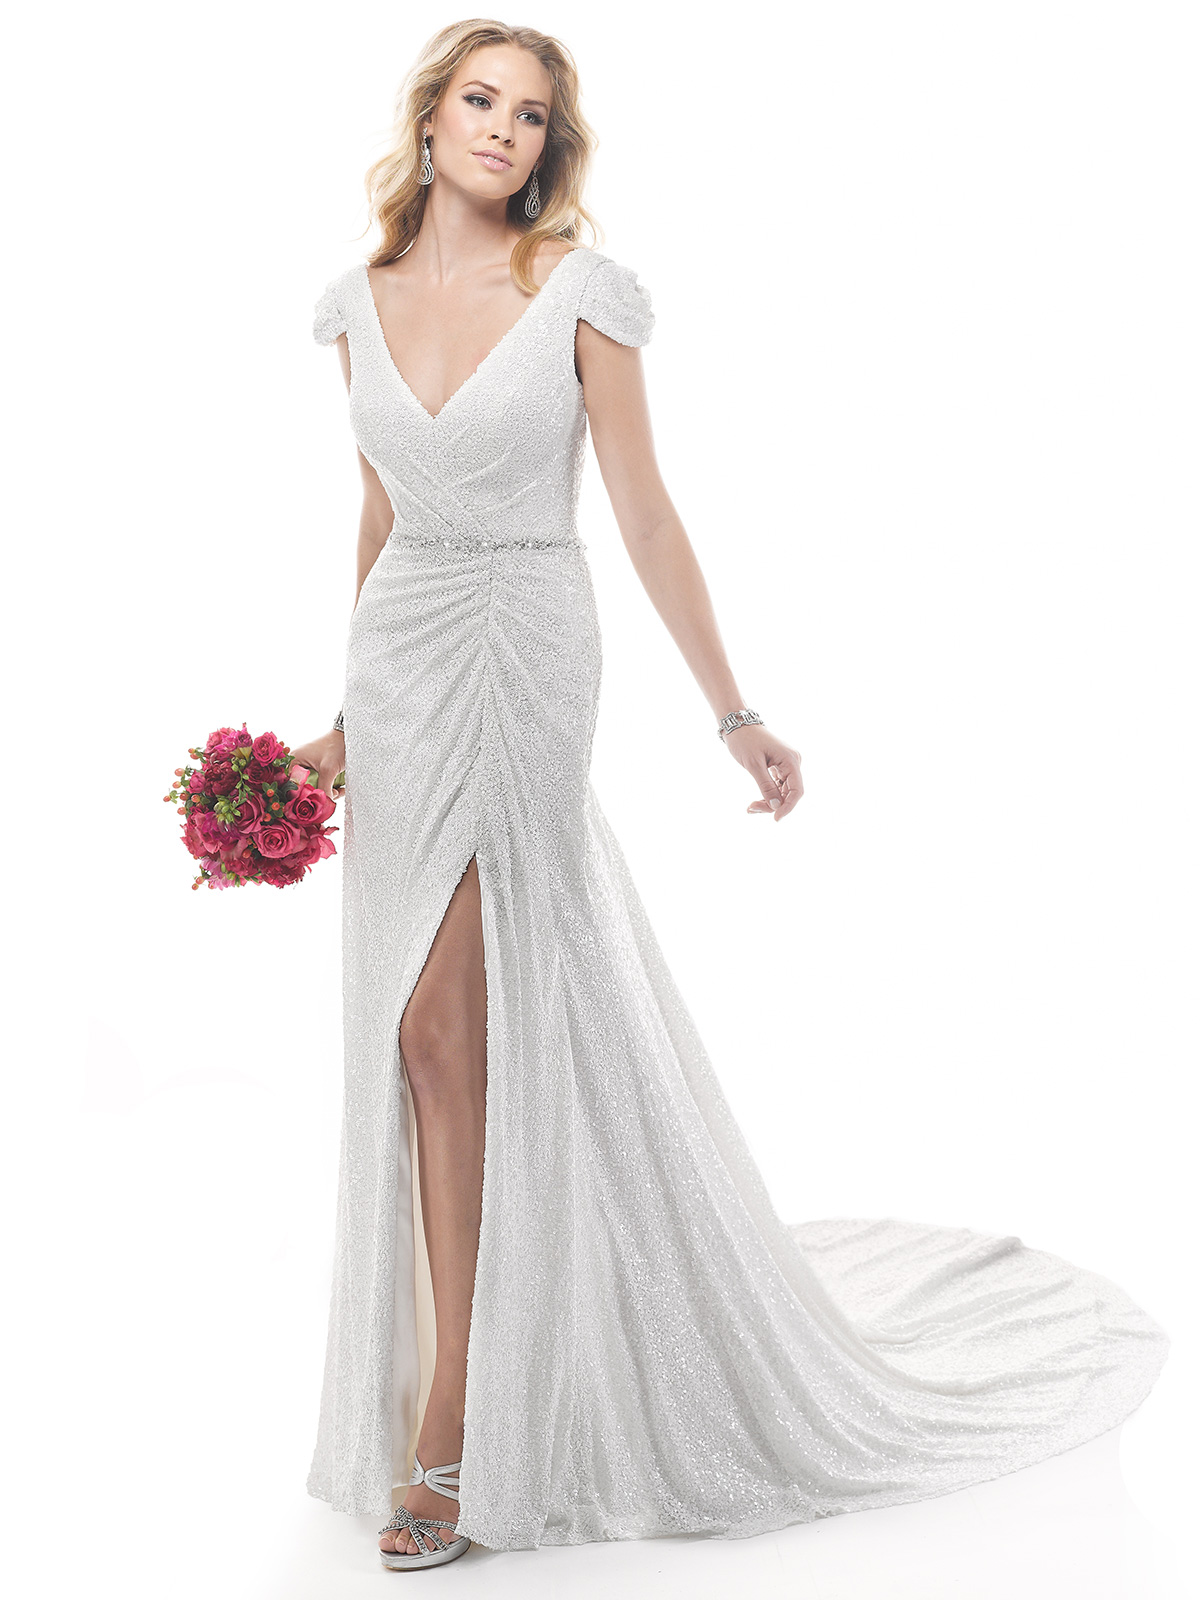 Janice Sung Wedding V Neck With Cap Sleeves Beaded Bridal Gown